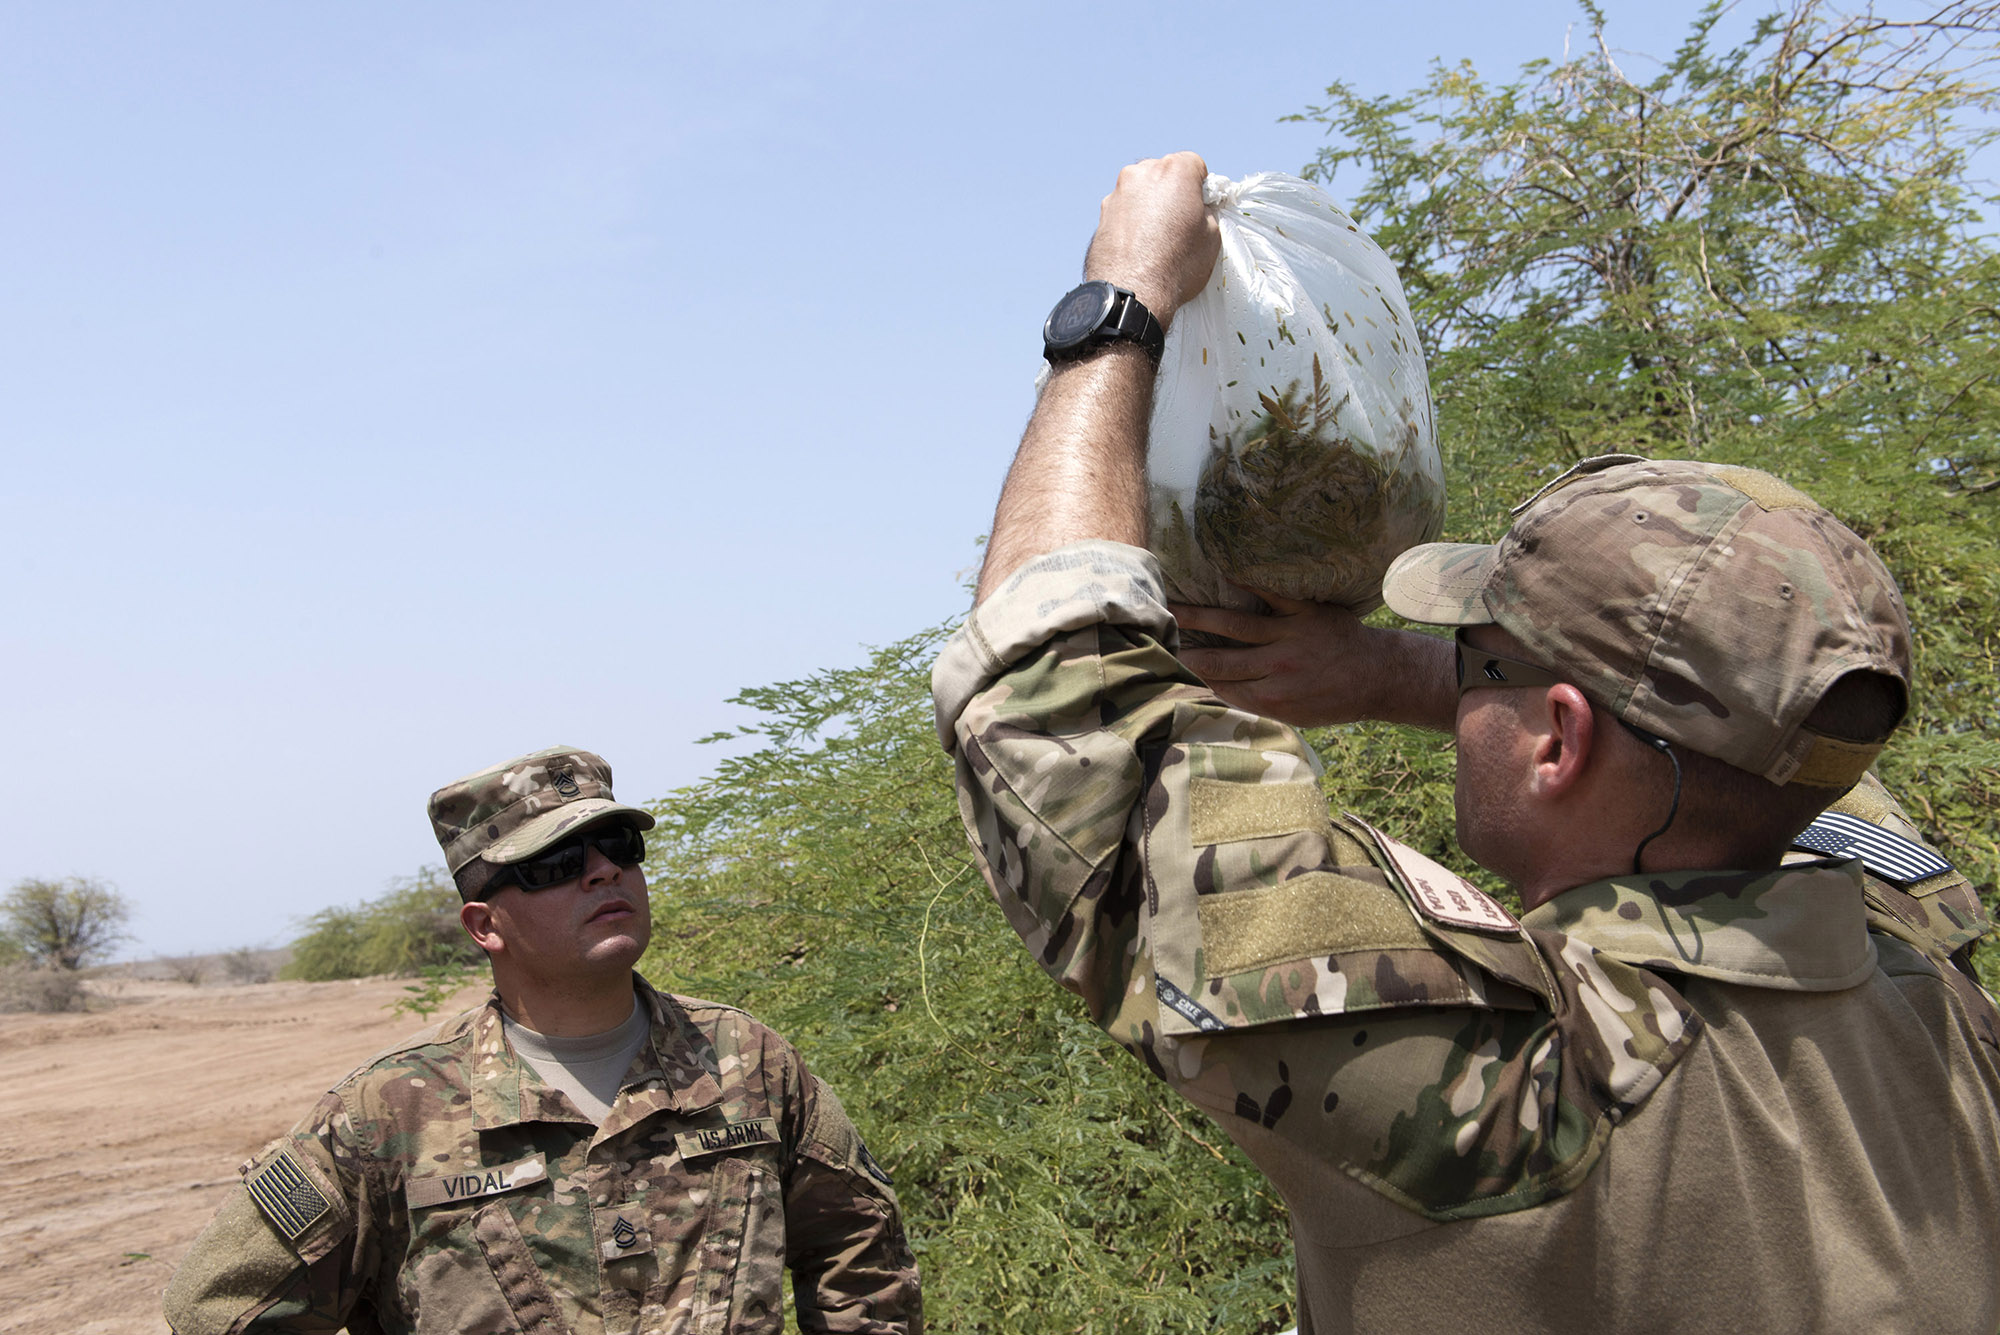 U.S. Air Force Tech. Sgt. Adam Murphy, a survival, evasion, resistance and escape specialist assigned to Combined Joint Task Force-Horn of Africa, holds up a bag of leaves to show U.S. Army Sgt. 1st Class Amando Vidal, a field artillery firefinder radar operator with to 3rd Battalion, 133rd Field Artillery Regiment, Texas National Guard, how much condensation had gathered during survival skills training on Camp Lemonnier, Djibouti, Oct. 13, 2018. Throughout this training, service members performed various skills such as constructing a shelter, finding alternative water sources and signaling for rescue. (U.S. Air National Guard photo by Master Sgt. Sarah Mattison)